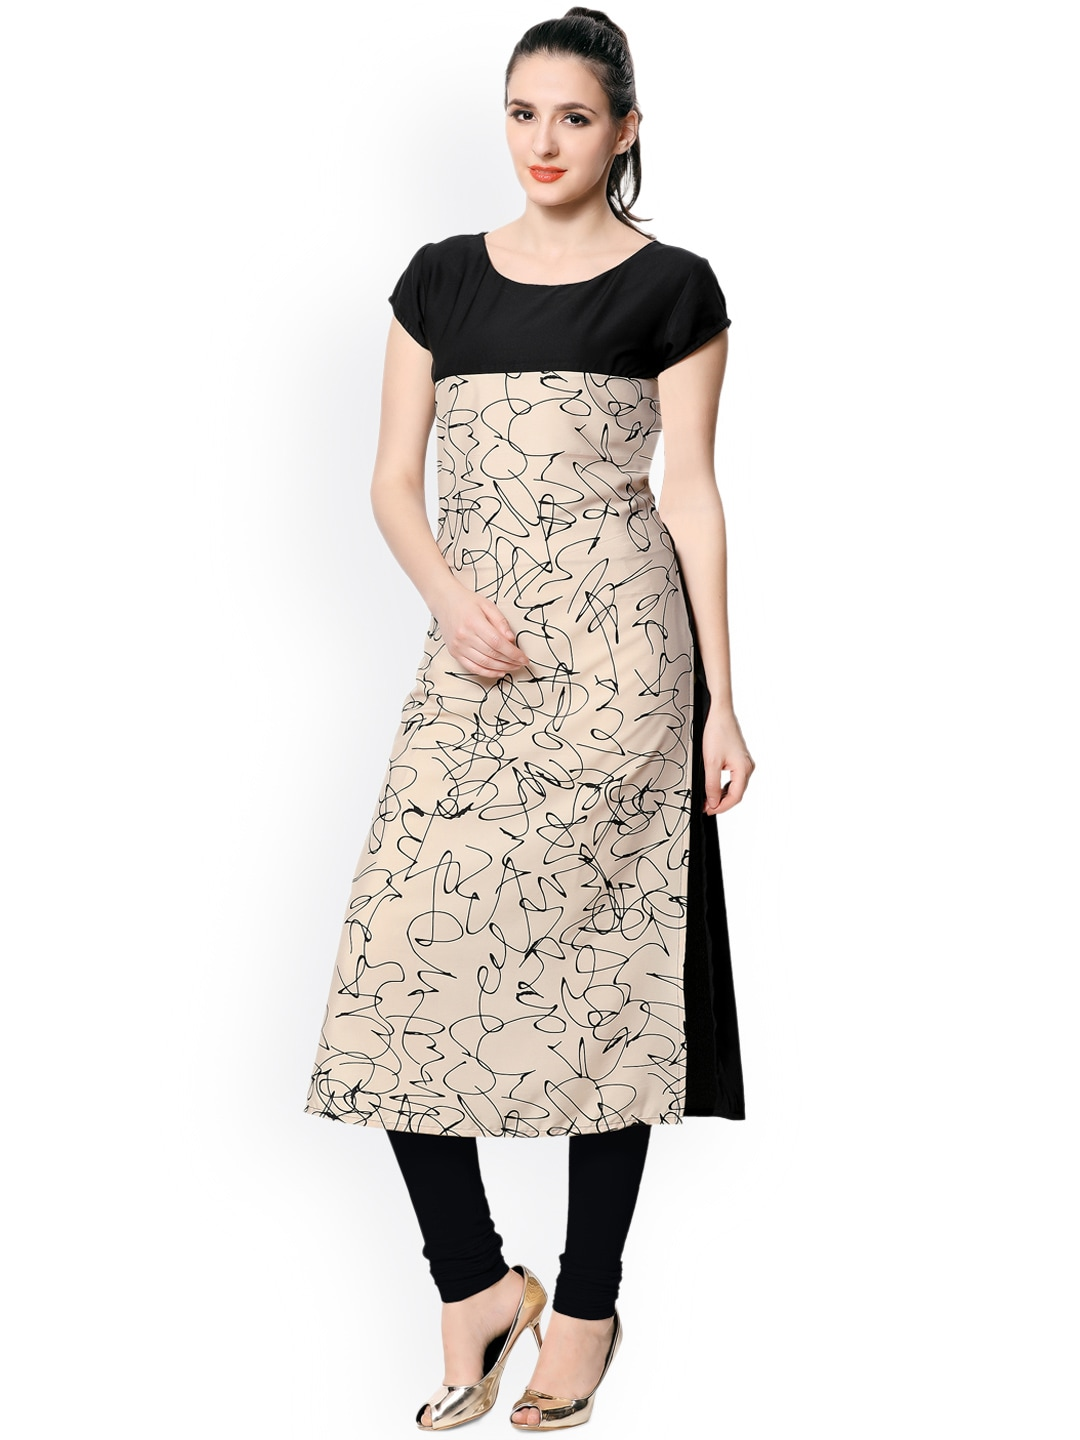 Buy an essay online cheap kurtis in india